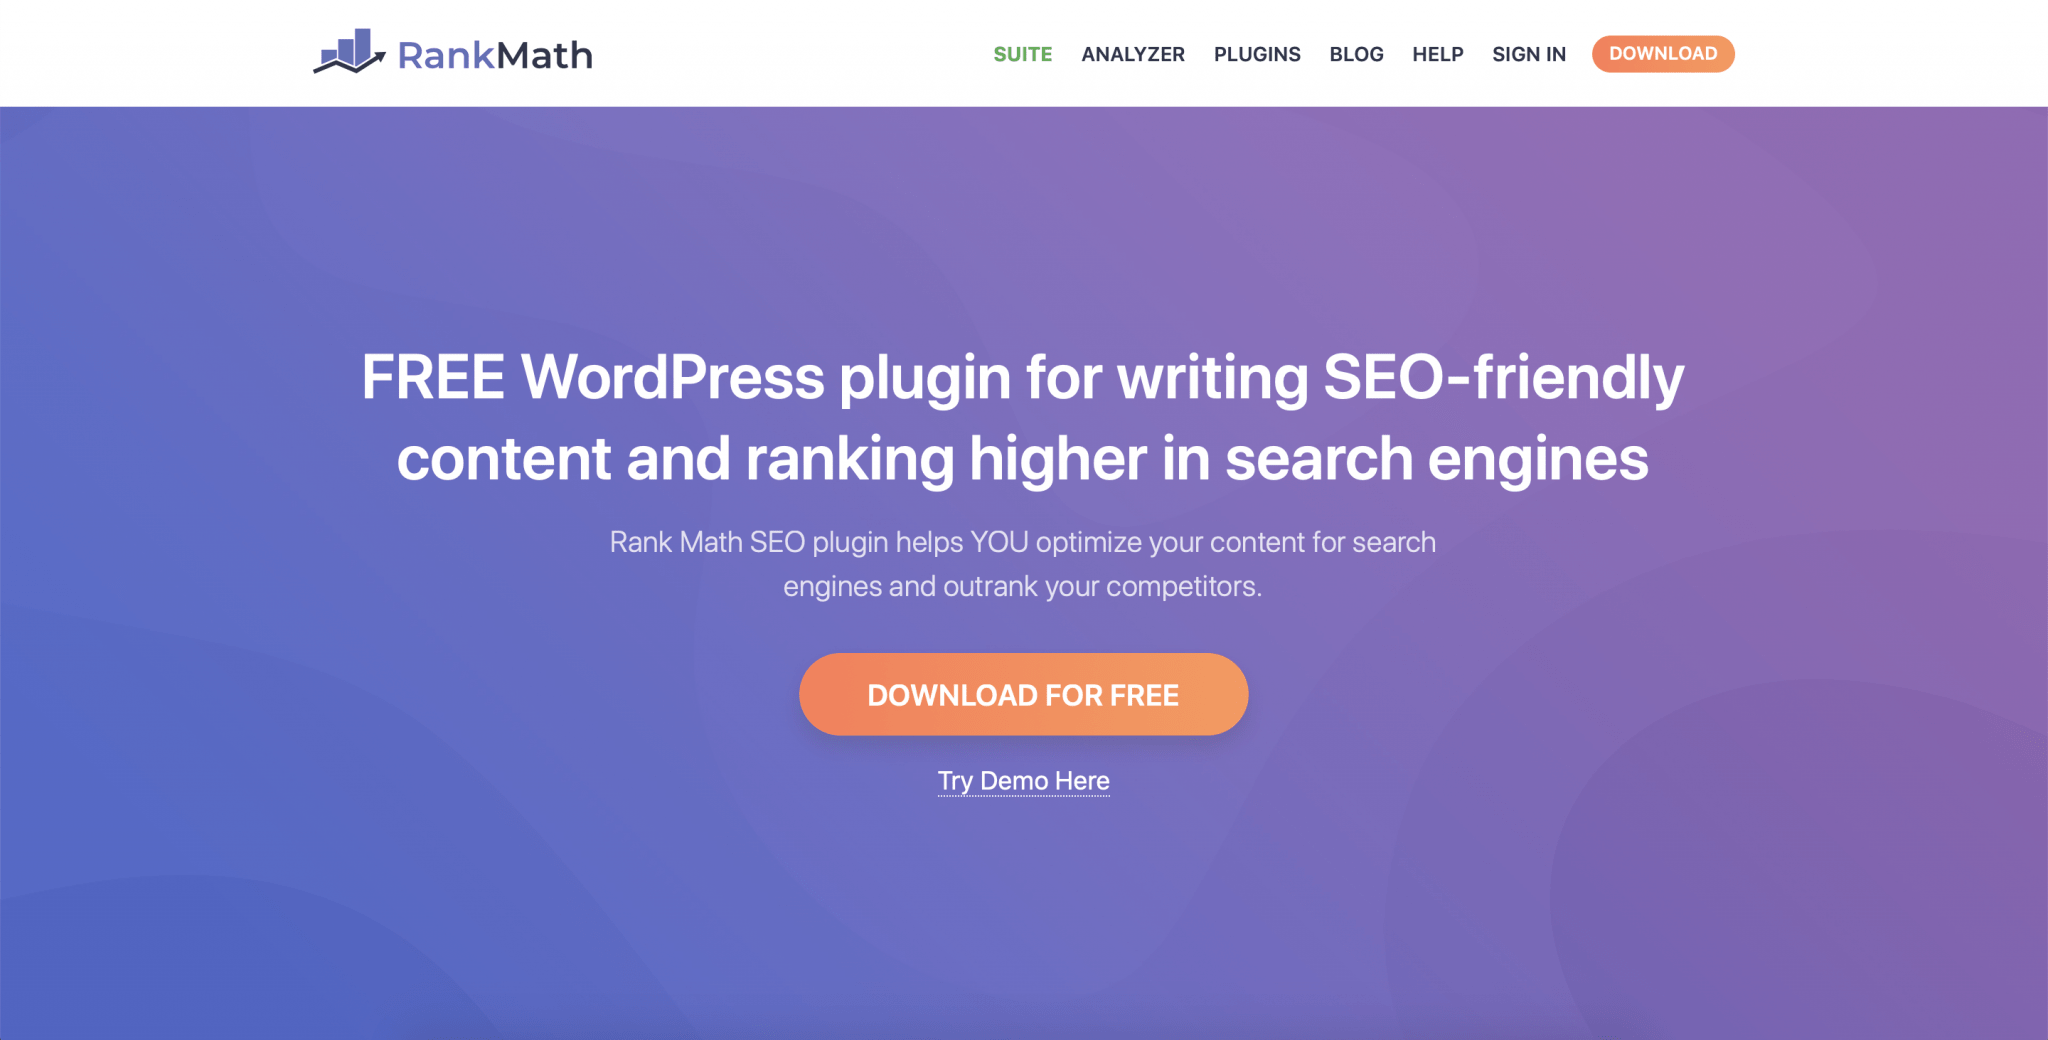 rankmath-seo-wordpress